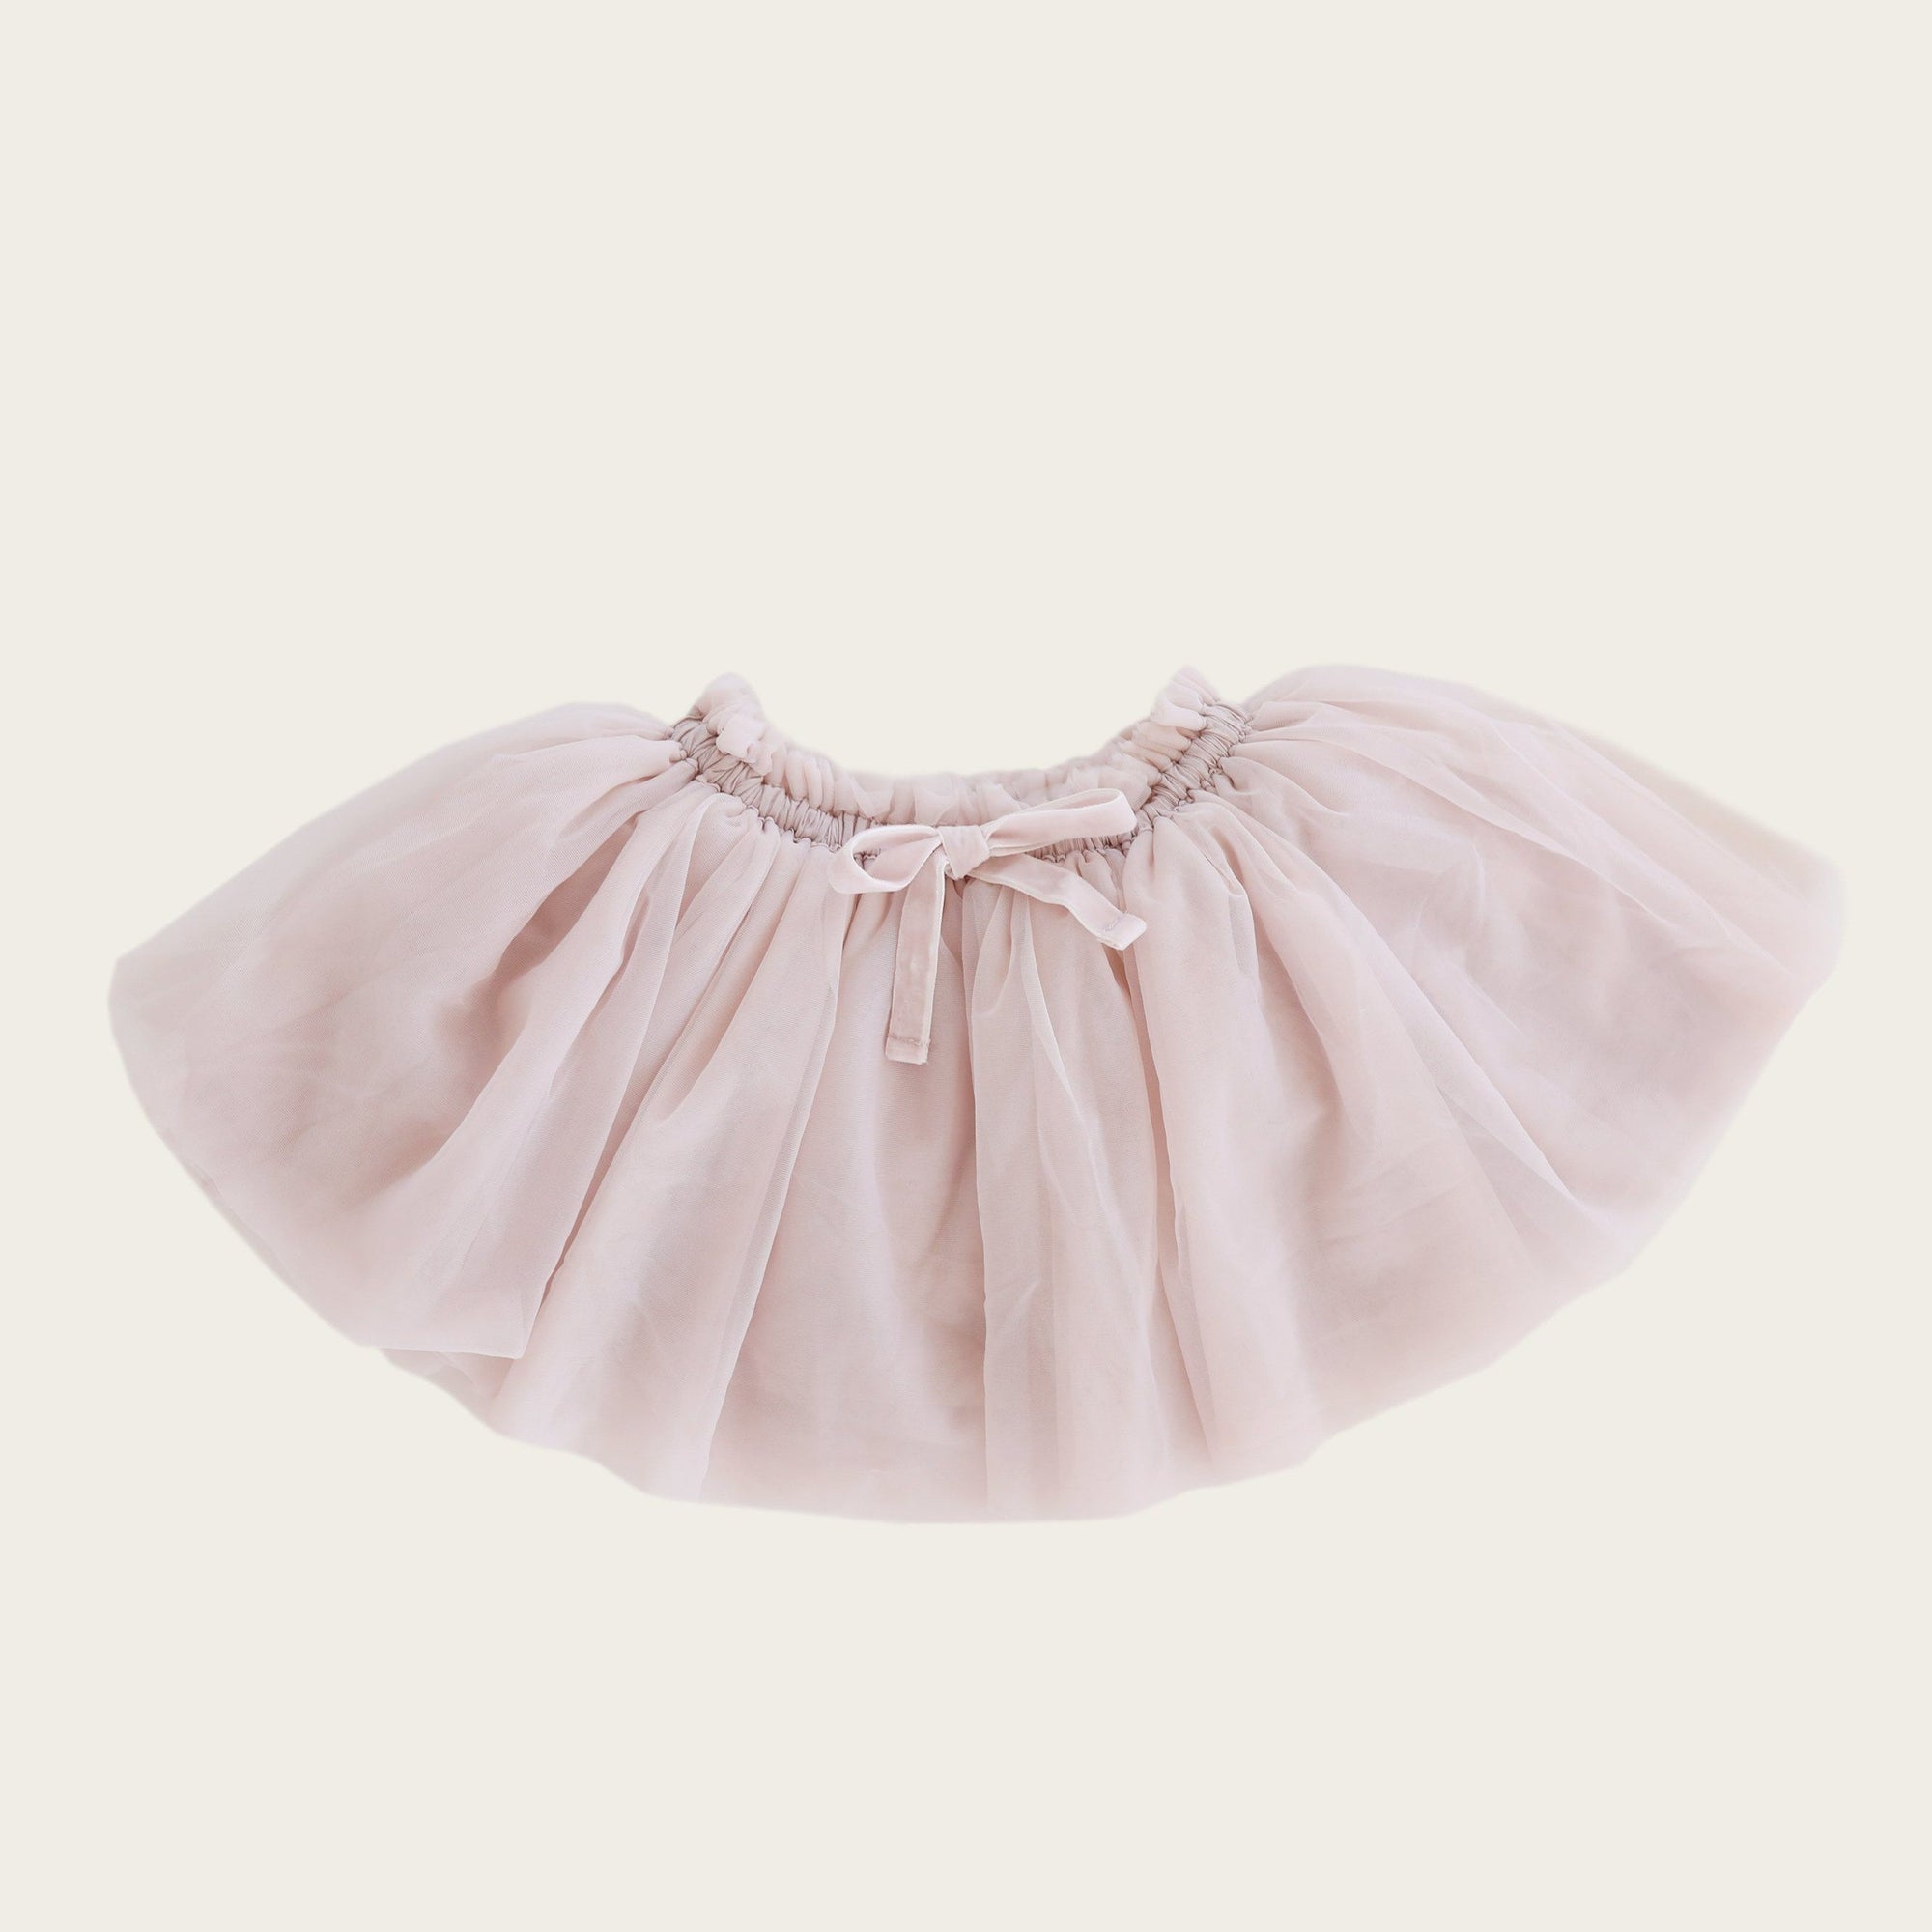 Soft Tulle Skirt (Blush)